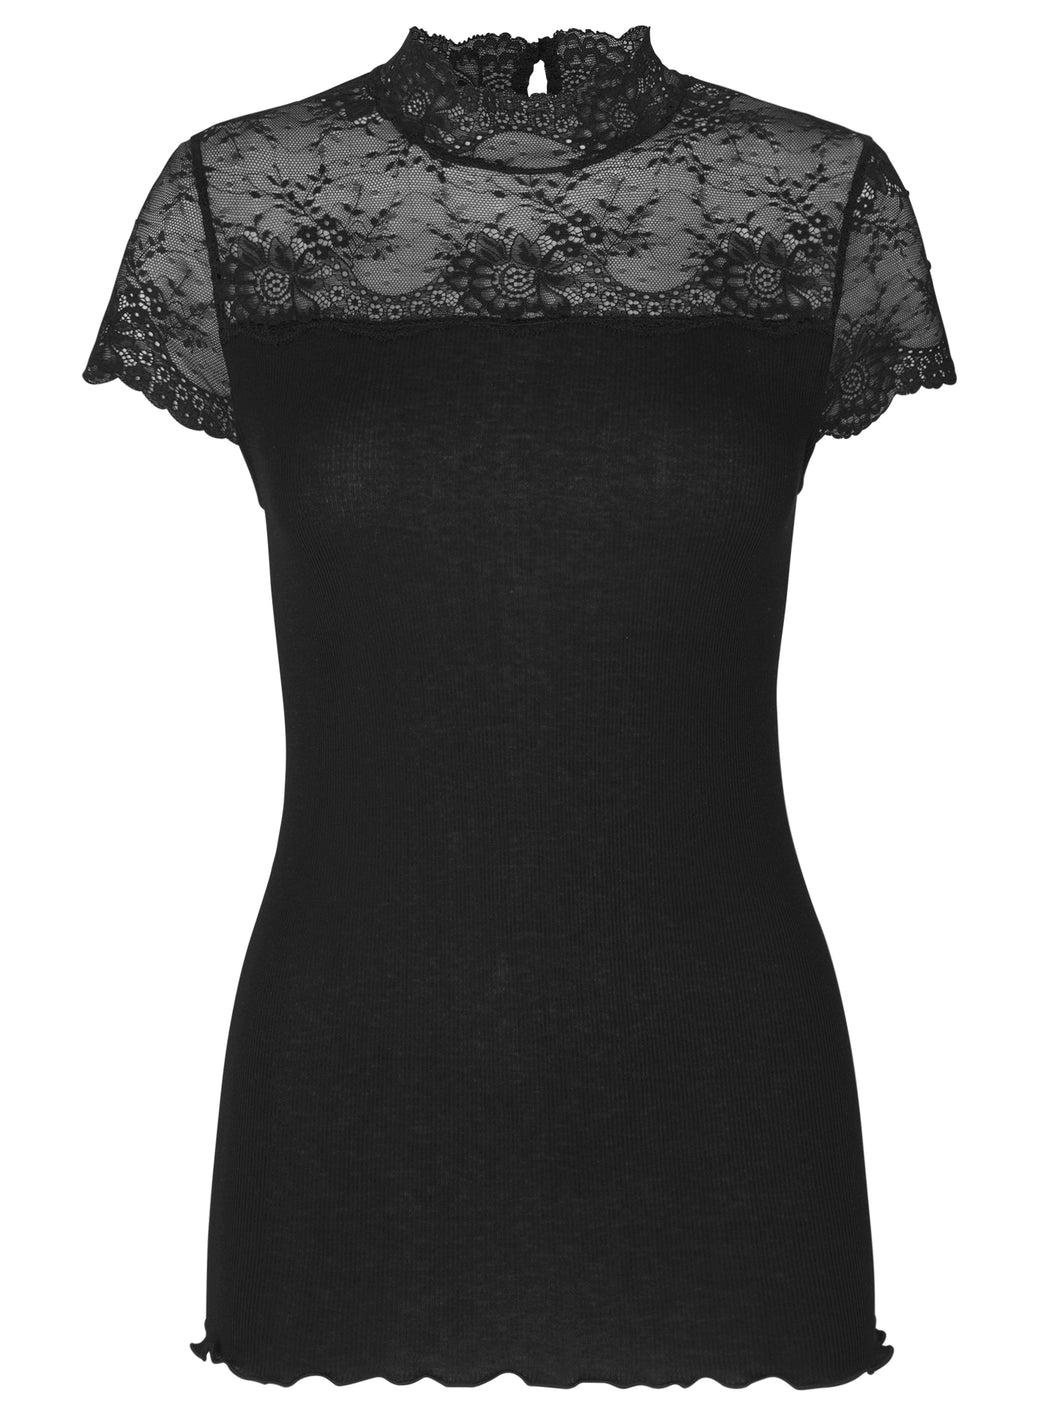 Rosemunde Highnecked T-Shirt w lace, 2 variants